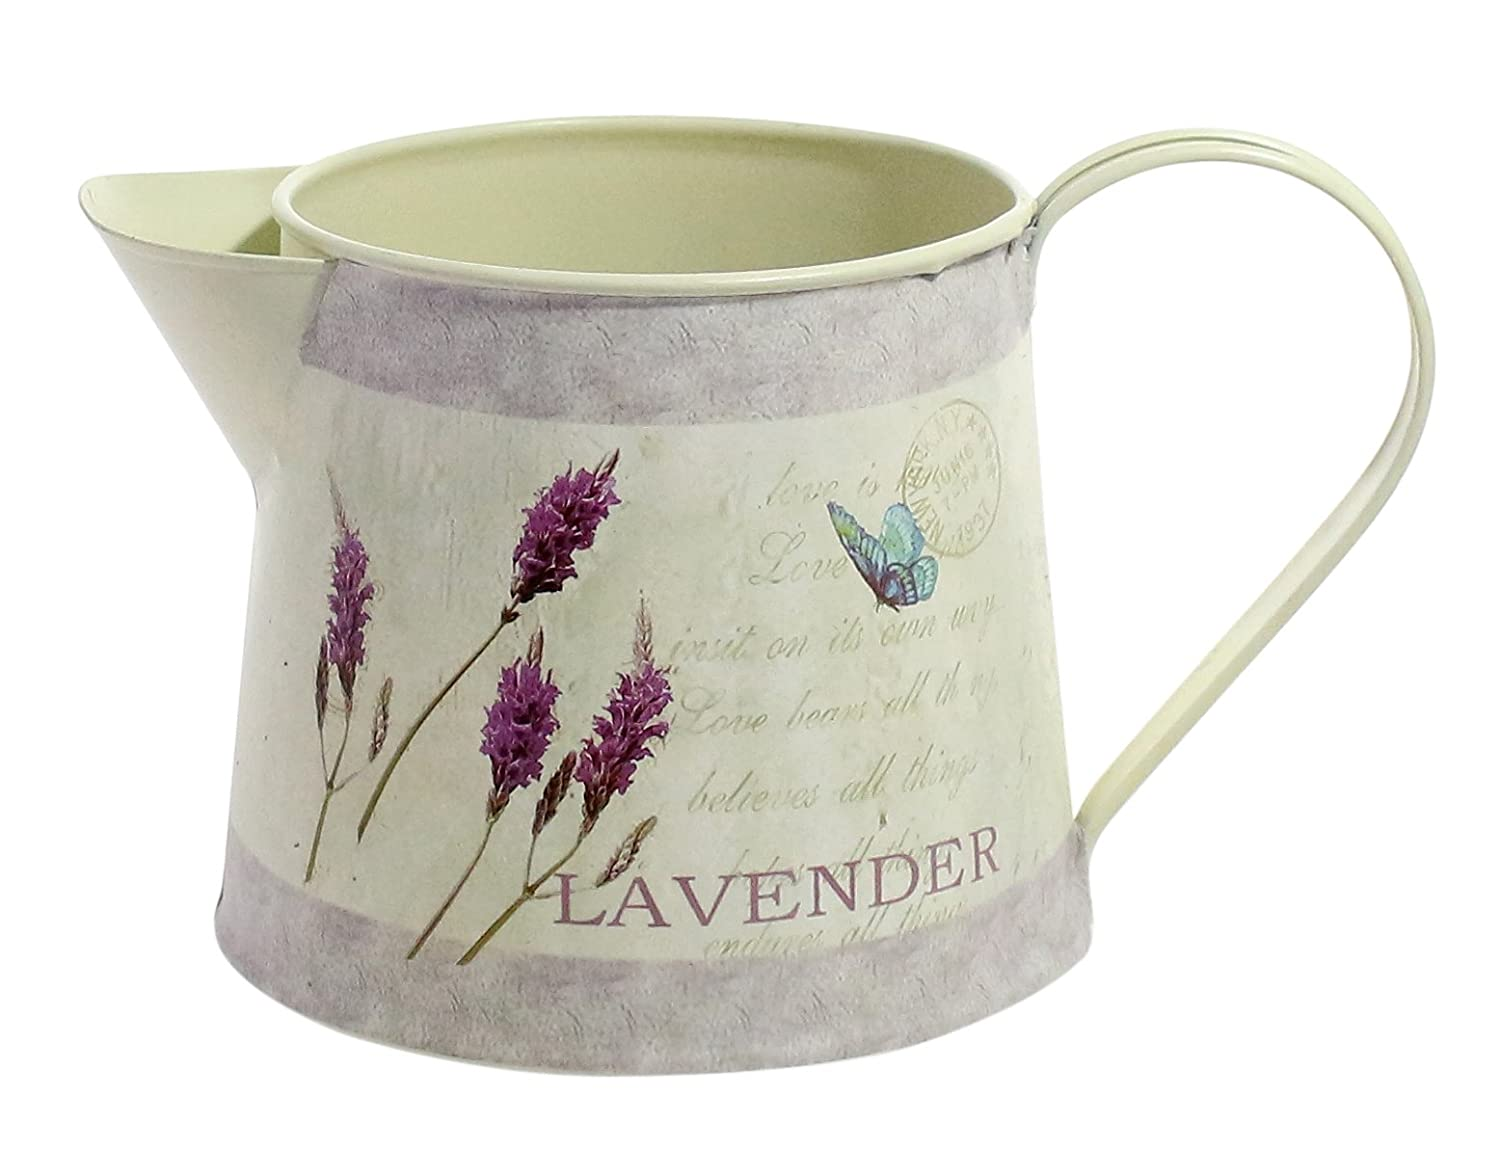 Jug Pail Bucket Small Retro Rustic Succulent Herb Flower Bonsai Planter Watering Pitcher Holder Container Lavender Petite 12CM Tall Metal Planter Watering Can